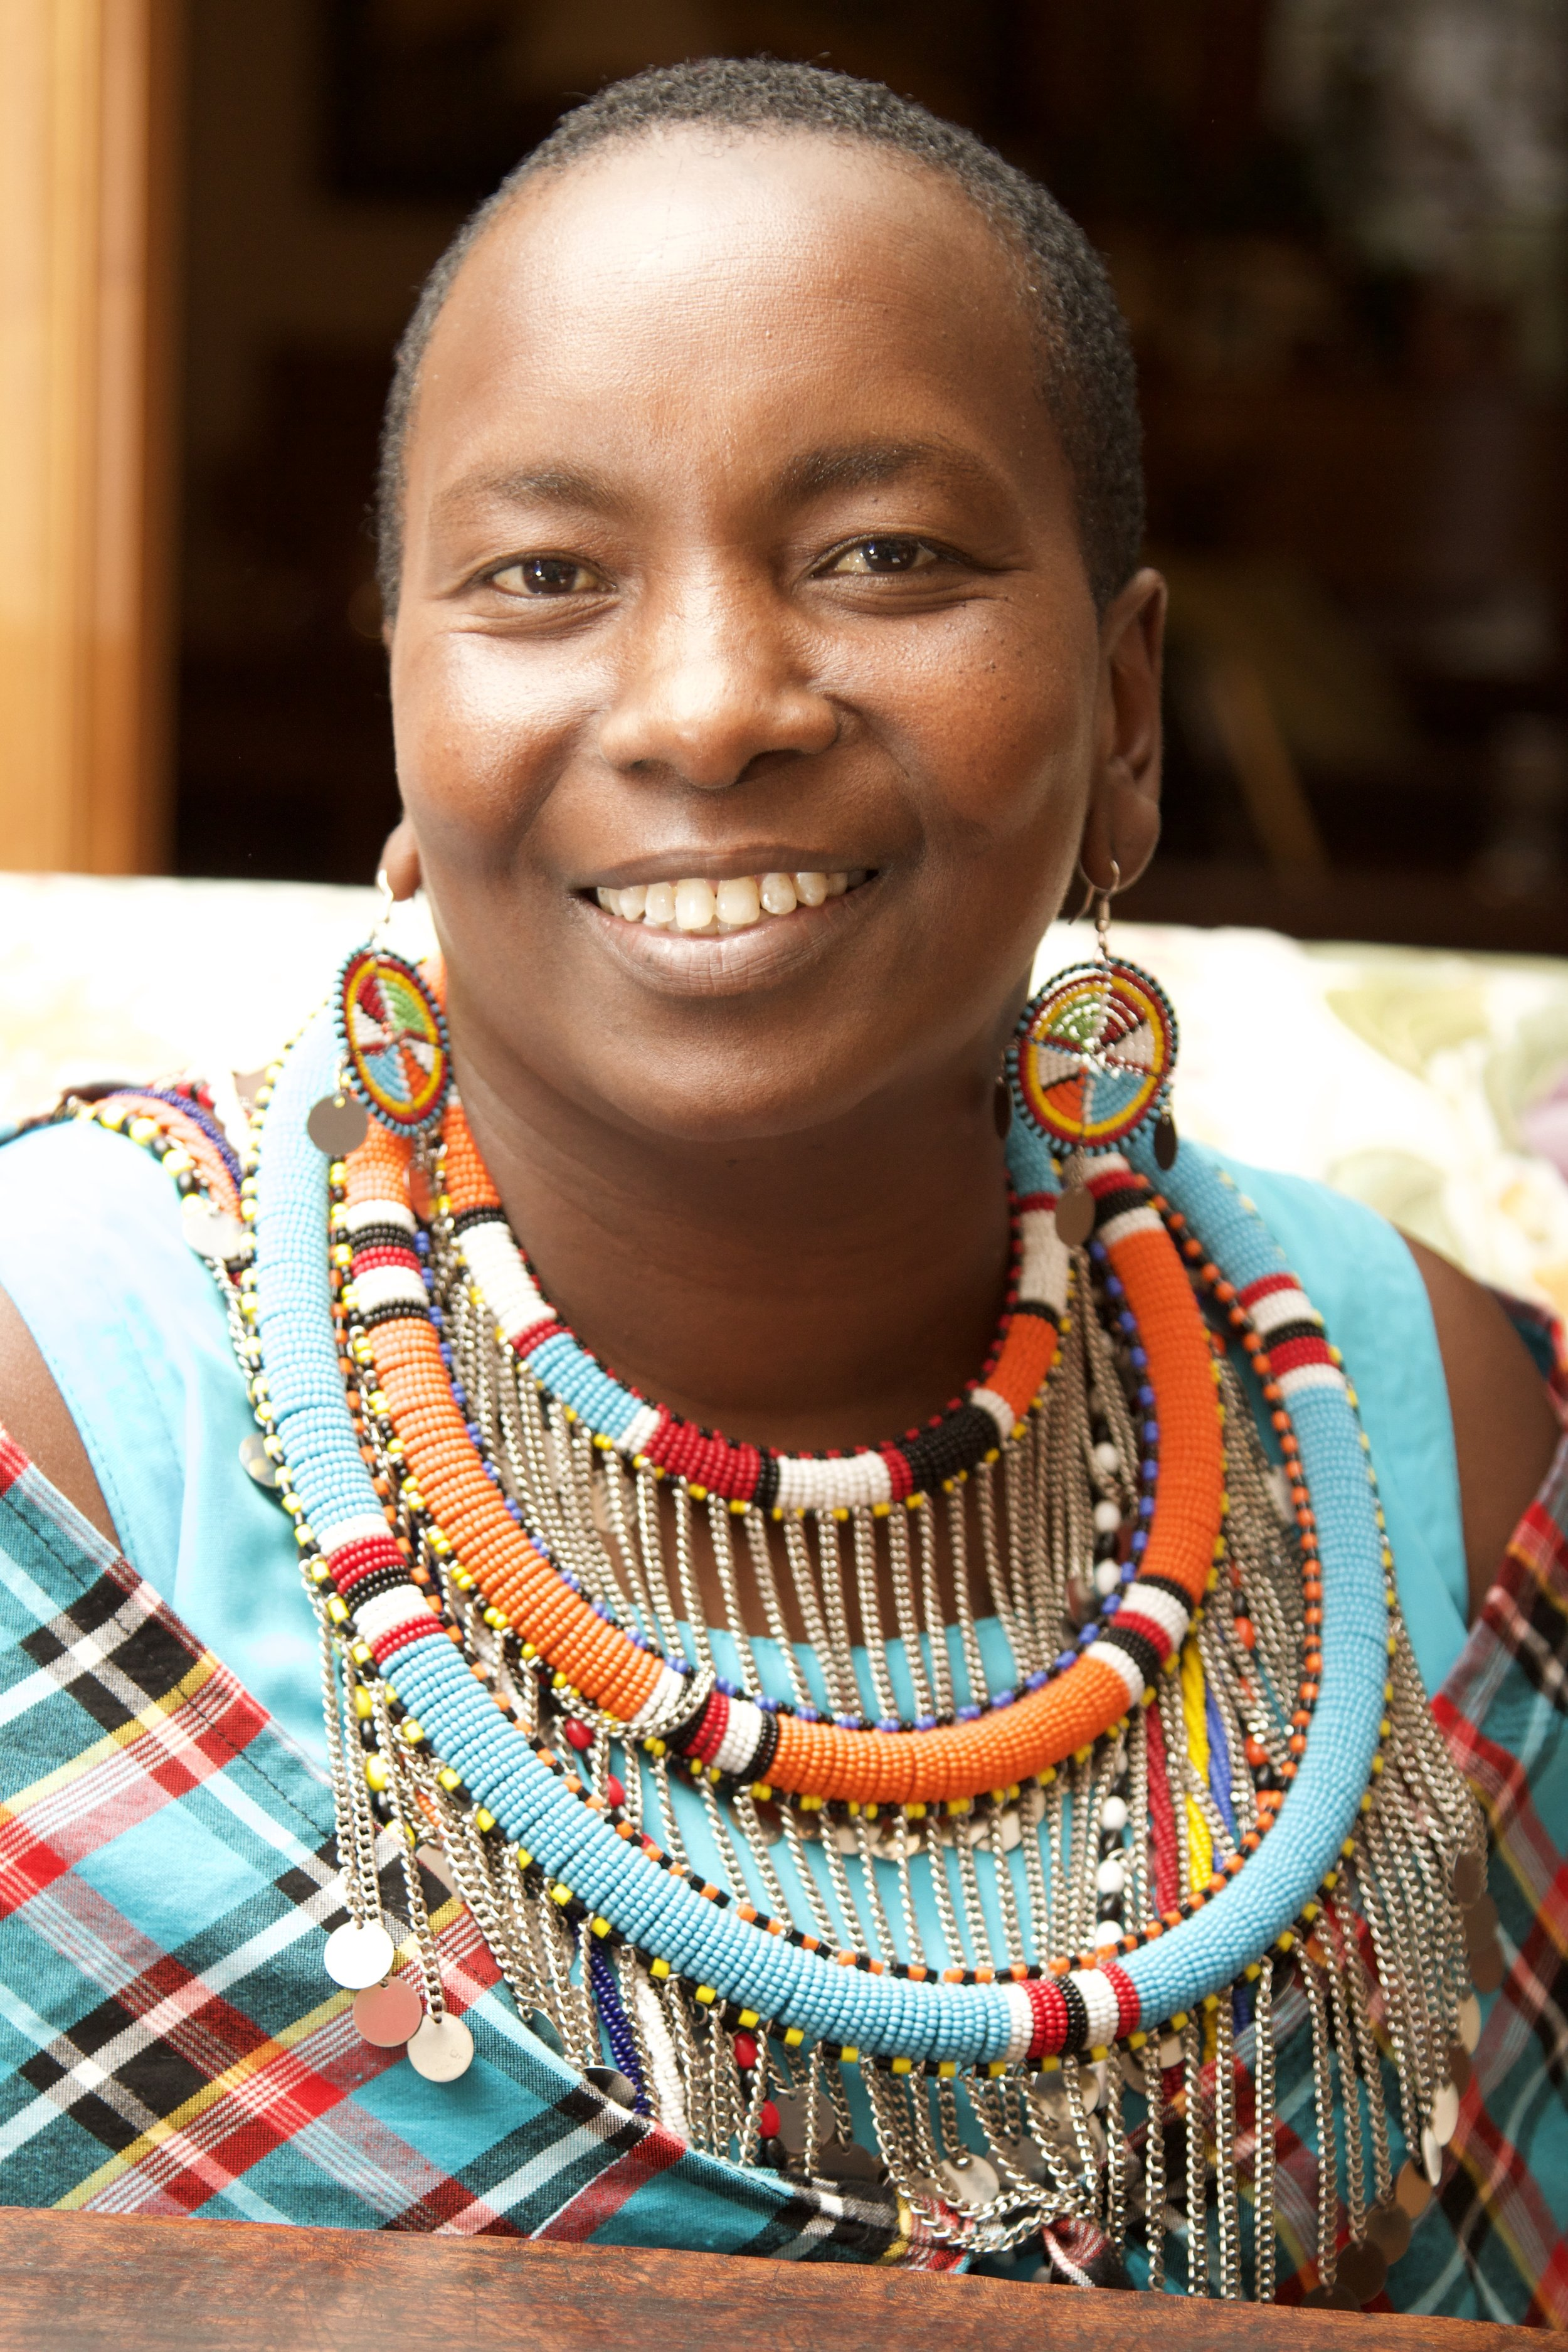 "Hellen Nkuraiya, Principal and Head Teacher of Enkiteng Lepa School - Hellen Nkuraiya's life's work is being an advocate for young girls and education in Kenya.She was born into a traditional Maasai family and was married off for cows twice by her father, starting at age nine. Hellen ran away and later received sponsorship for her higher education.In the face of family and community resistance, she has spoken publicly about her life and is a tireless advocate for girl's education and giving girls access to school. She has traveled extensively and has taken her message to countless schools, churches, and civic organizations abroad.""I have promised myself not to stop fighting for girls until my community stops exchanging girls for cows.""Hellen has taught school for 13 years, helping many young girls along the way. In 2008, in partnership with the Polish government and The Asante Africa Foundation, she founded and now serves as the Director of Enkiteng Lepa School in Maji Moto Kenya. In partnership with Jamii Moja, the school has grown to 97 students.Hellen has been instrumental in building supportive villages for widows in both Maji Moto and the village in which she now resides, Tepesua, Kenya.In 2009, Hellen was chosen and sponsored to attend the prestigious Women's Leadership for the World (WLW) program at Santa Clara University."